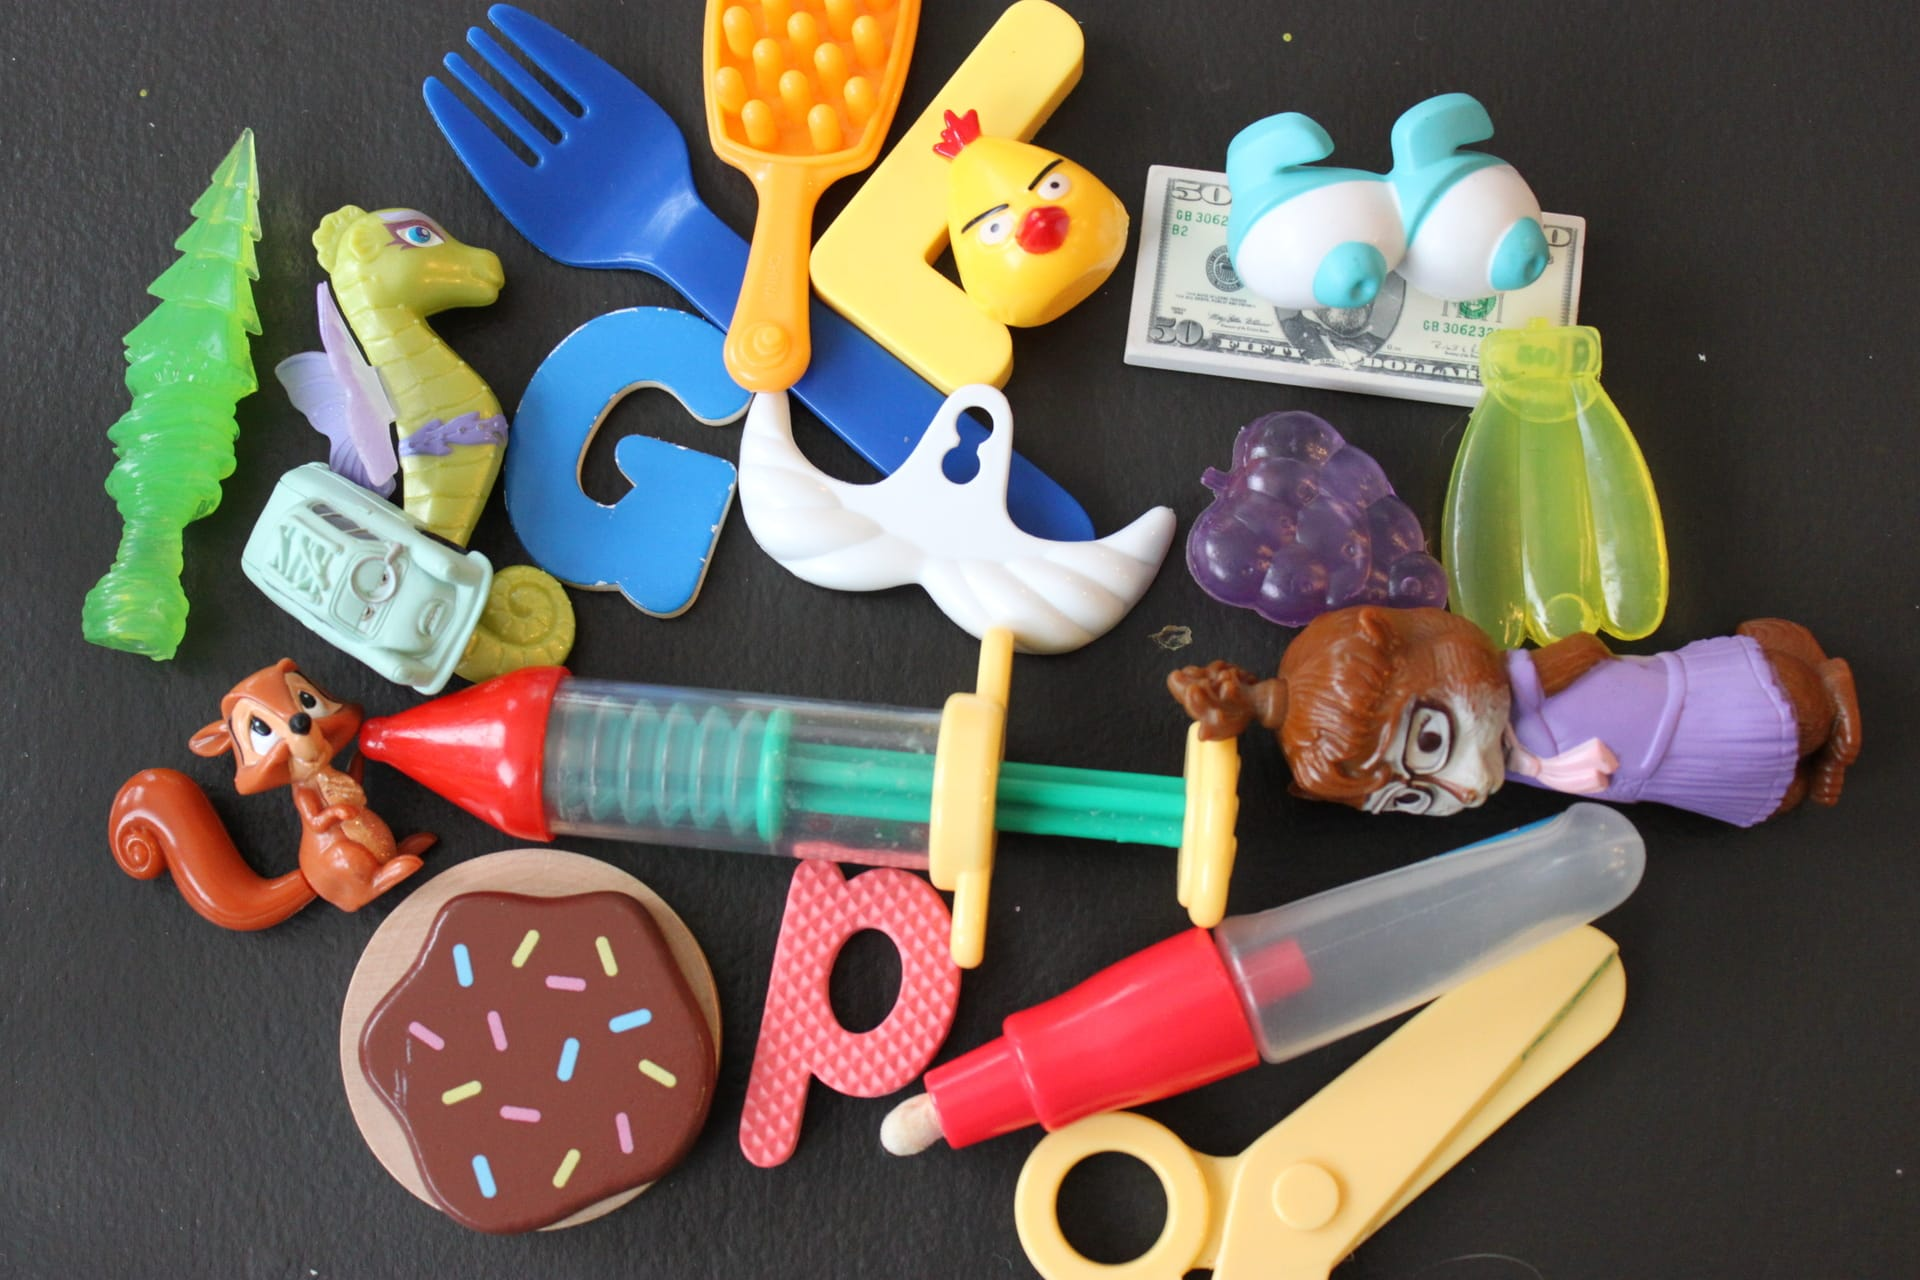 small objects or toys